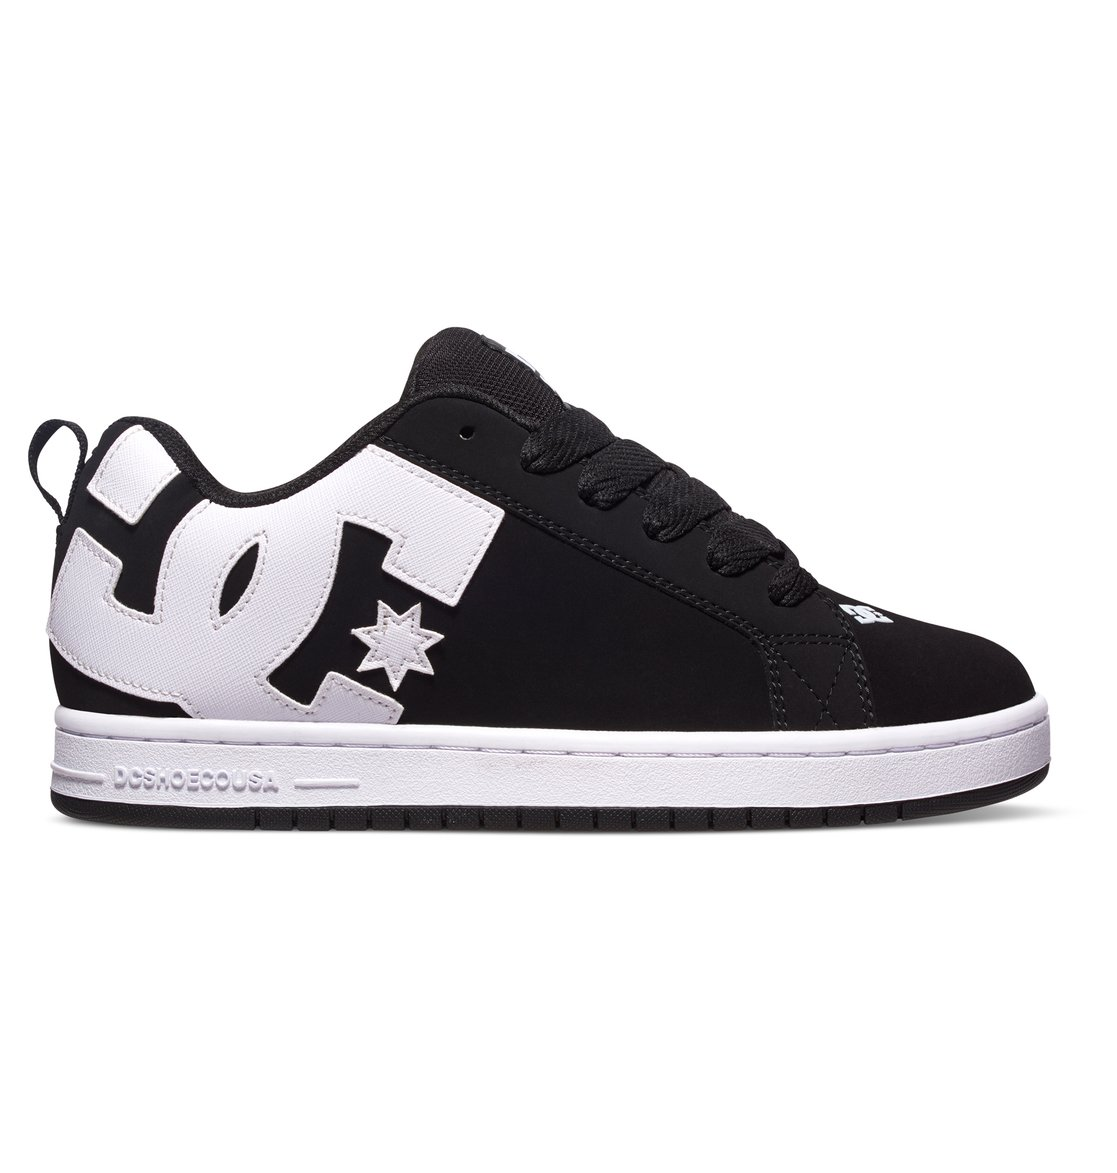 womens dc shoes cleo navy lace up flat ladies casual pumps trainers size 3 8,dc shop for clothes online,dc shoes for,dc cheap shoes free delivery,where can i buy,dc shoes high tops for women dc shoes rebound high top trainers white online clothes pinterest shoes high tops, high tops and trainers,blogdumbwebcs.tk